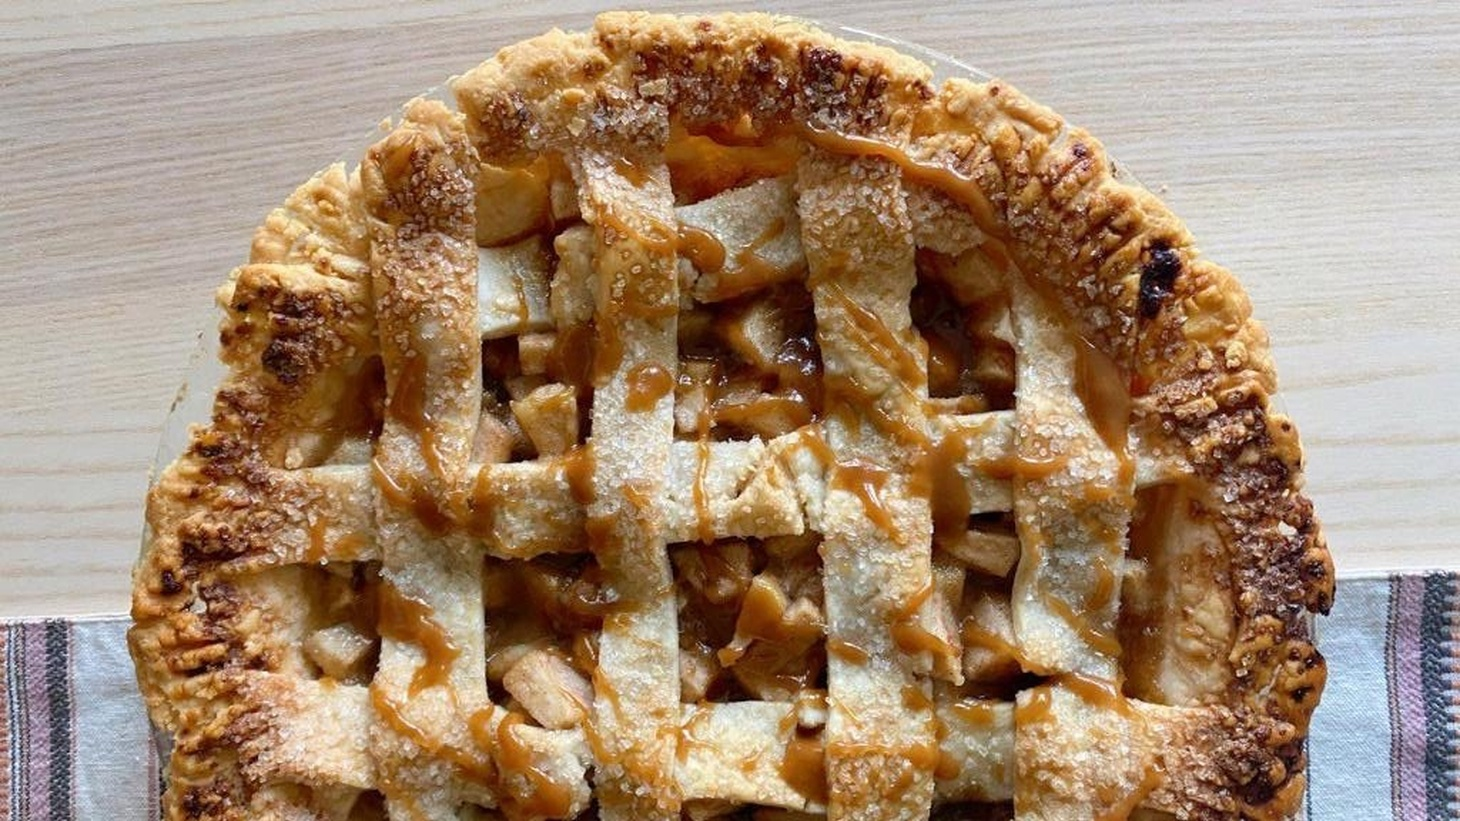 A pie baked by LA resident Caroline Kaufmann, who uses Instagram to sell her homemade sweets.